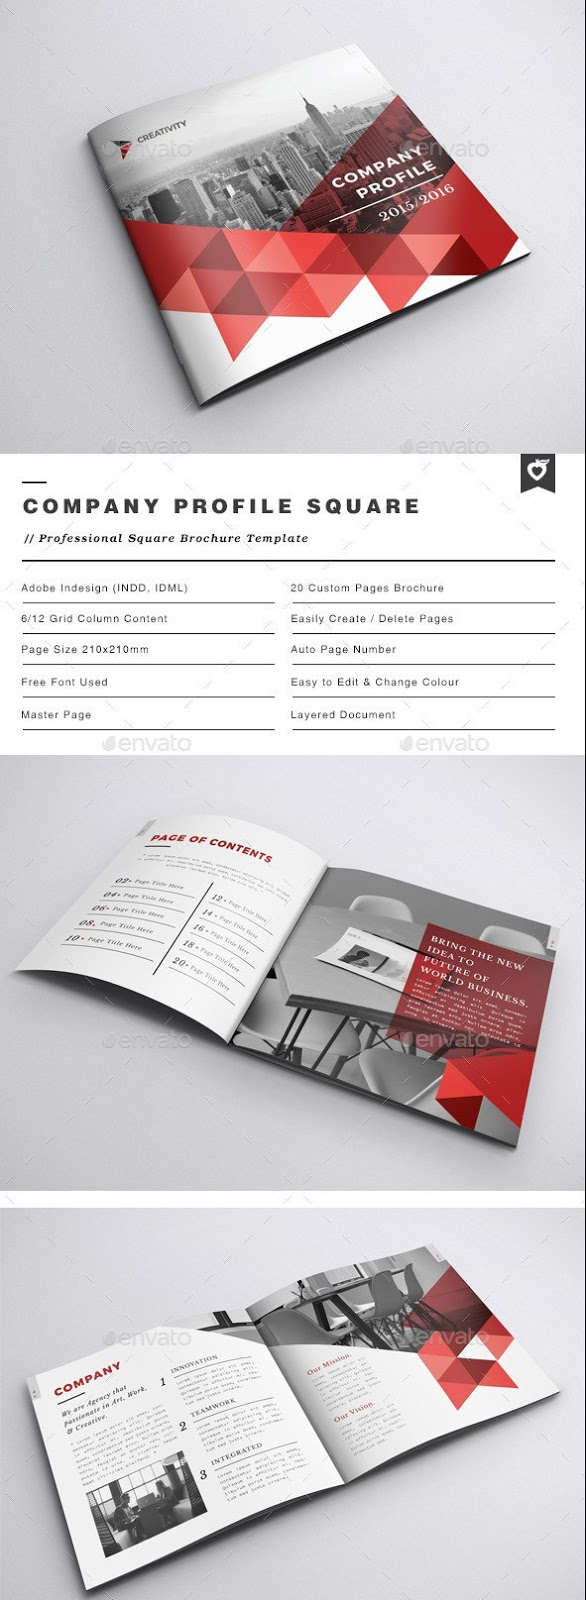 100 free premium brochure templates photoshop psd for Photoshop brochure templates